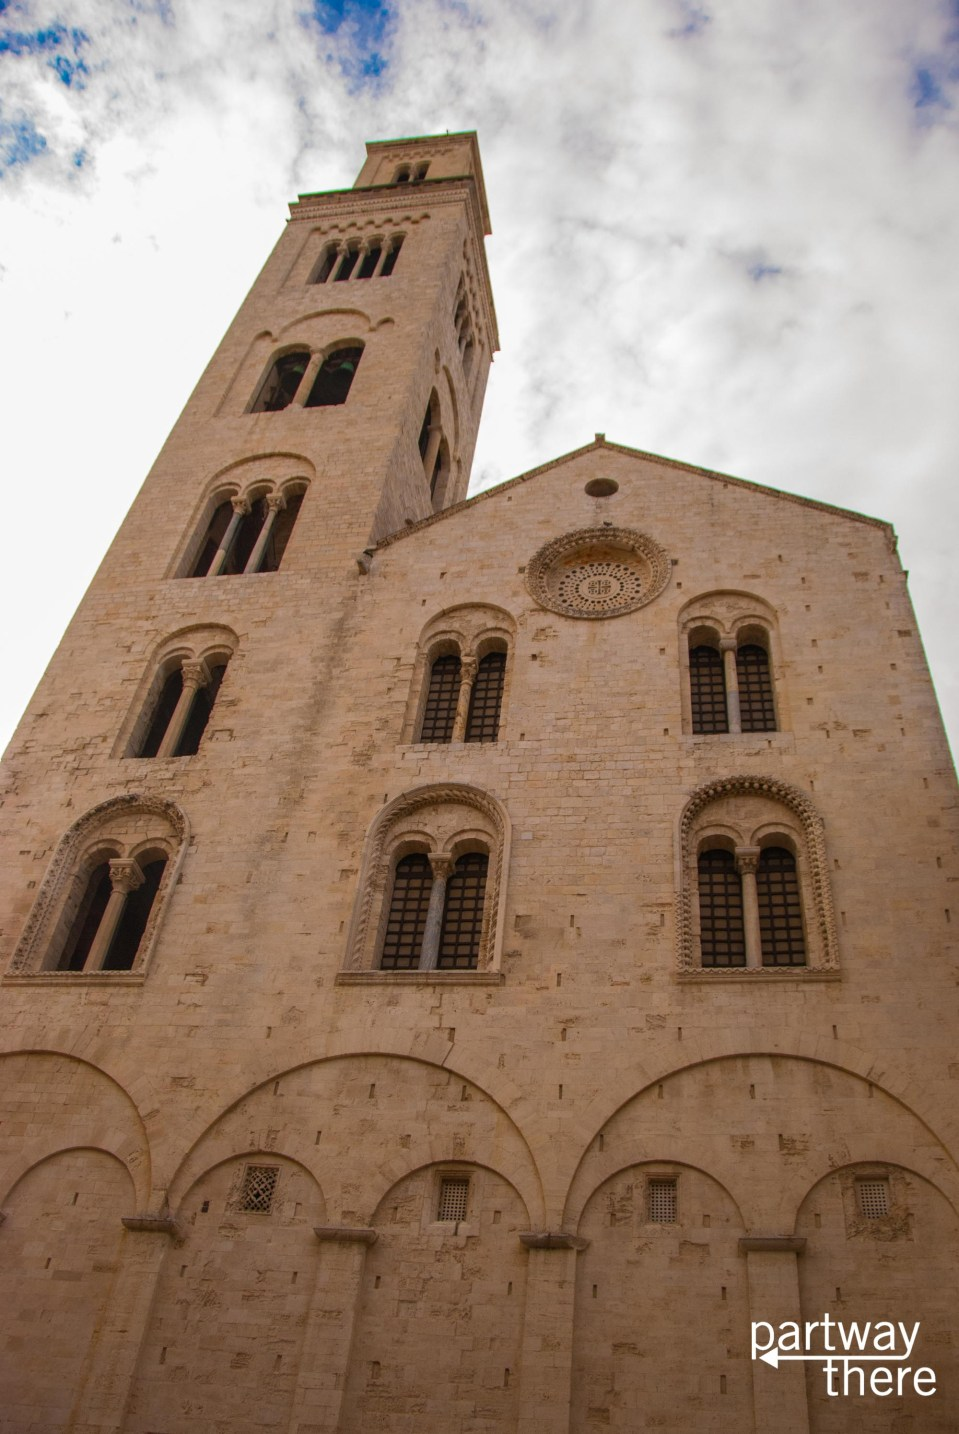 The main church in Bari